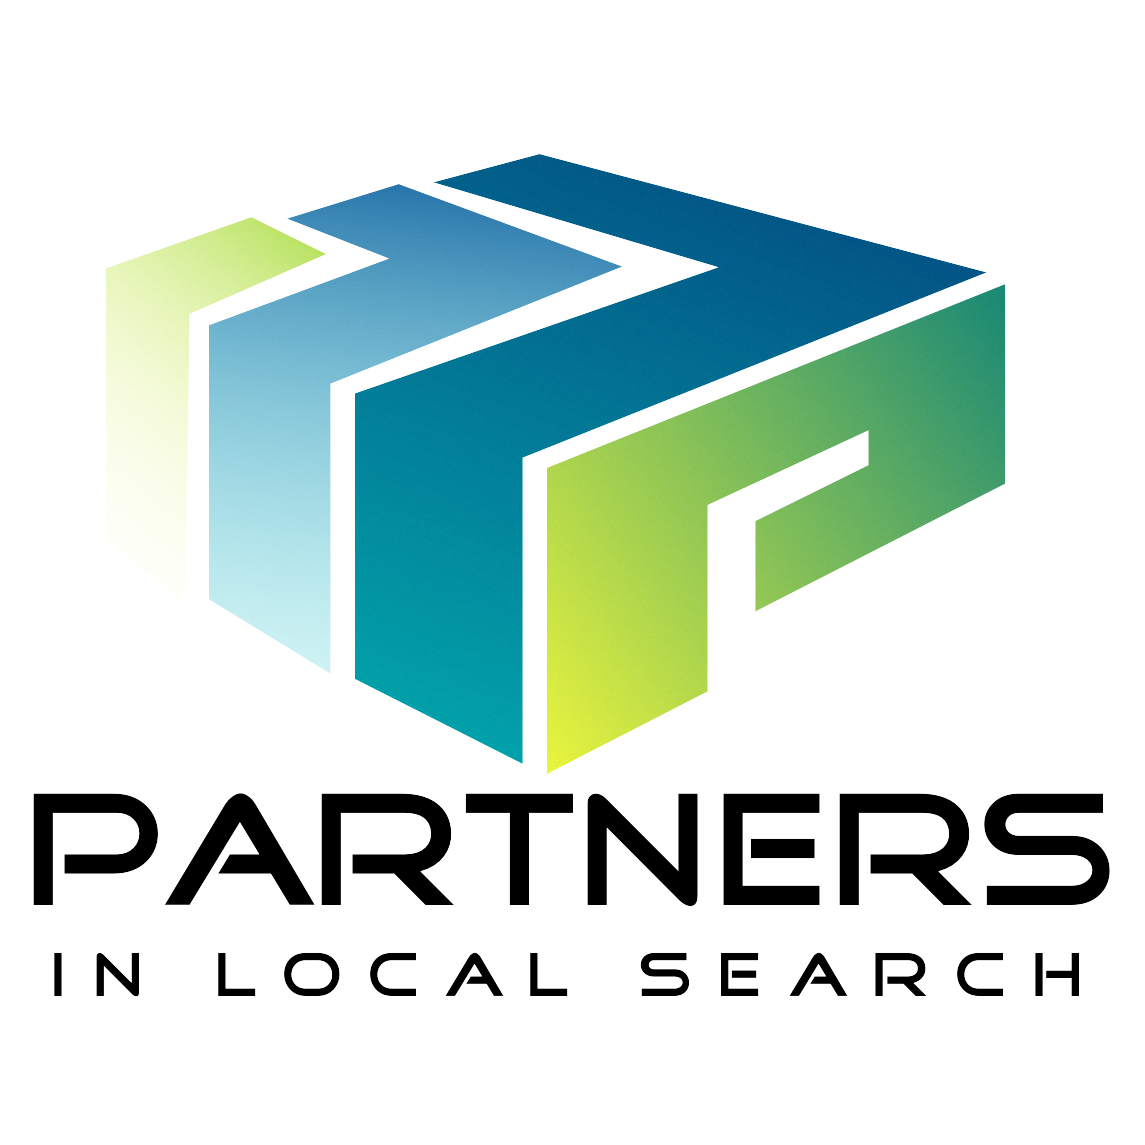 Partners In Local Search LLC.